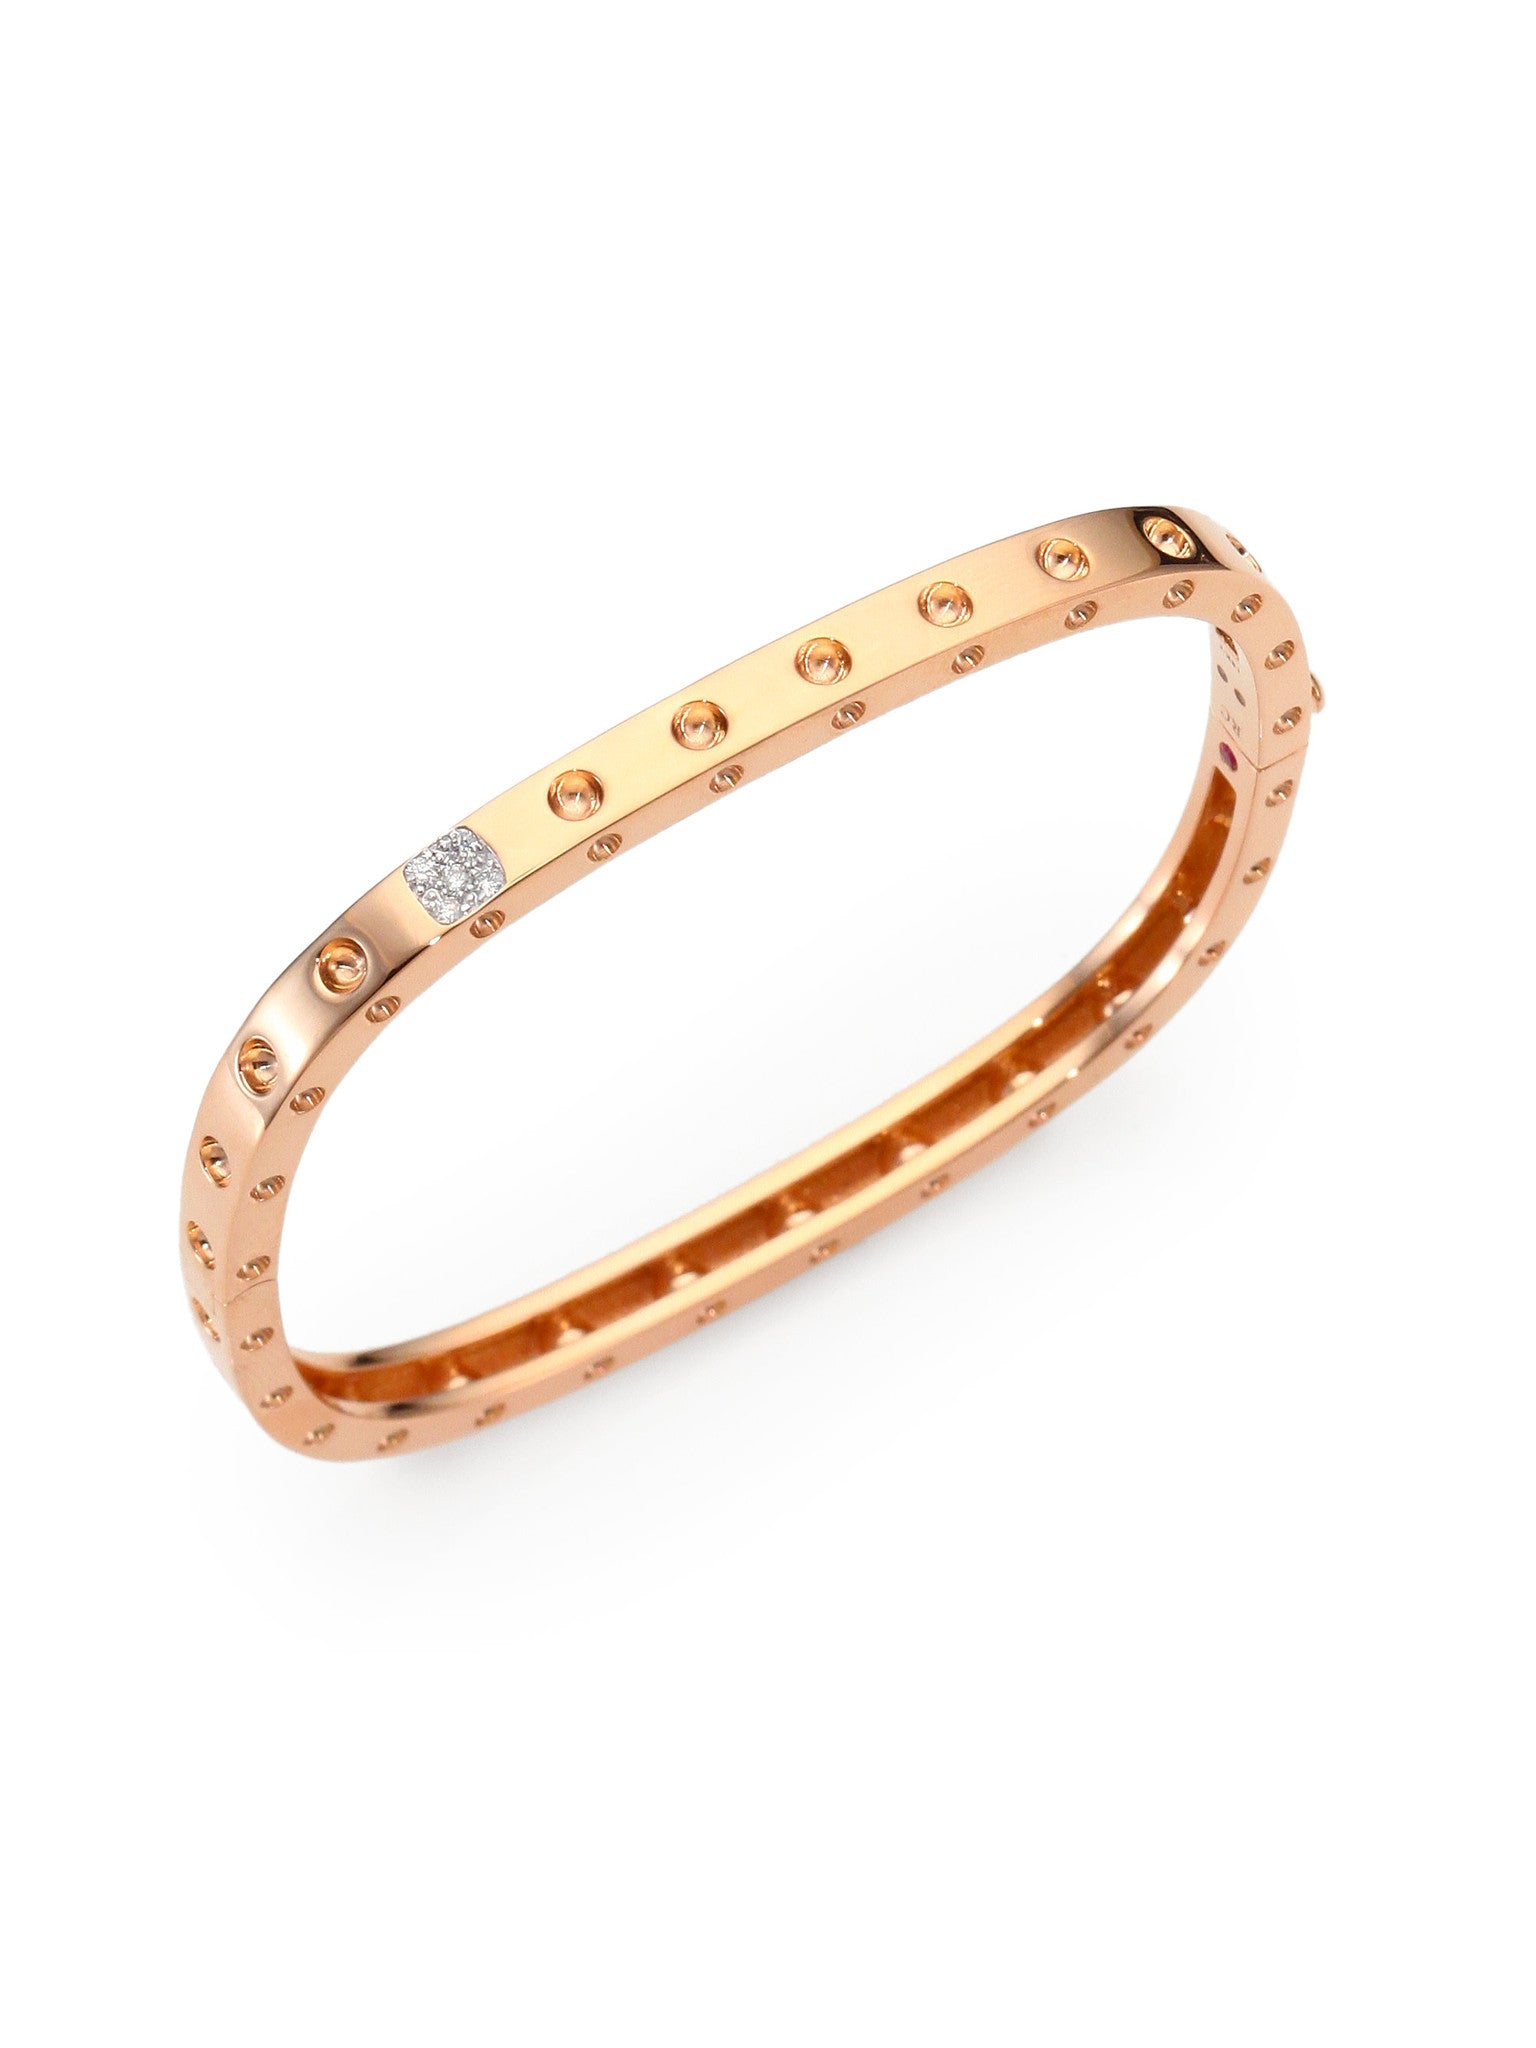 jewel and bangles penny tiny bracelet bangle diamond yellow diamonds product preville thin pav pave gold box